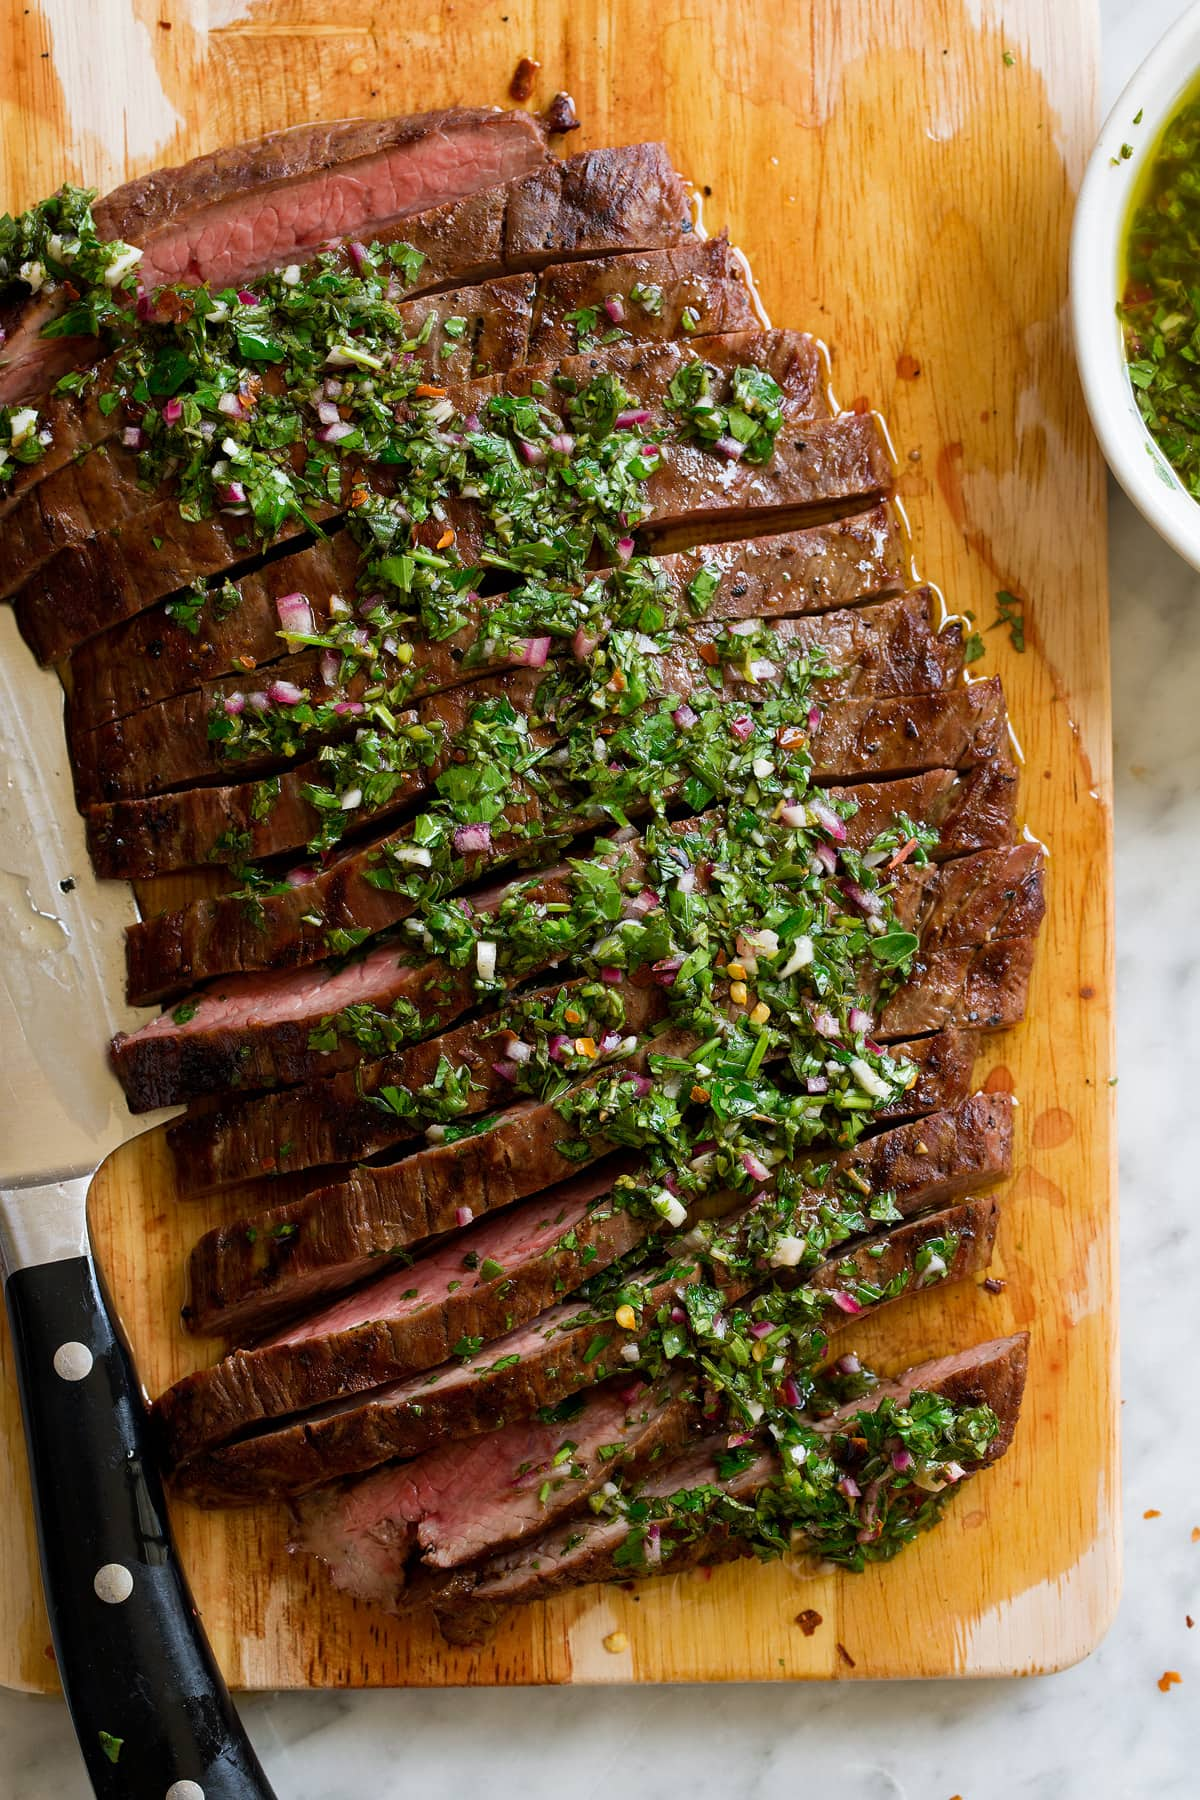 Showing a serving suggestion for homemade chimichurri, serving it over sliced steak.